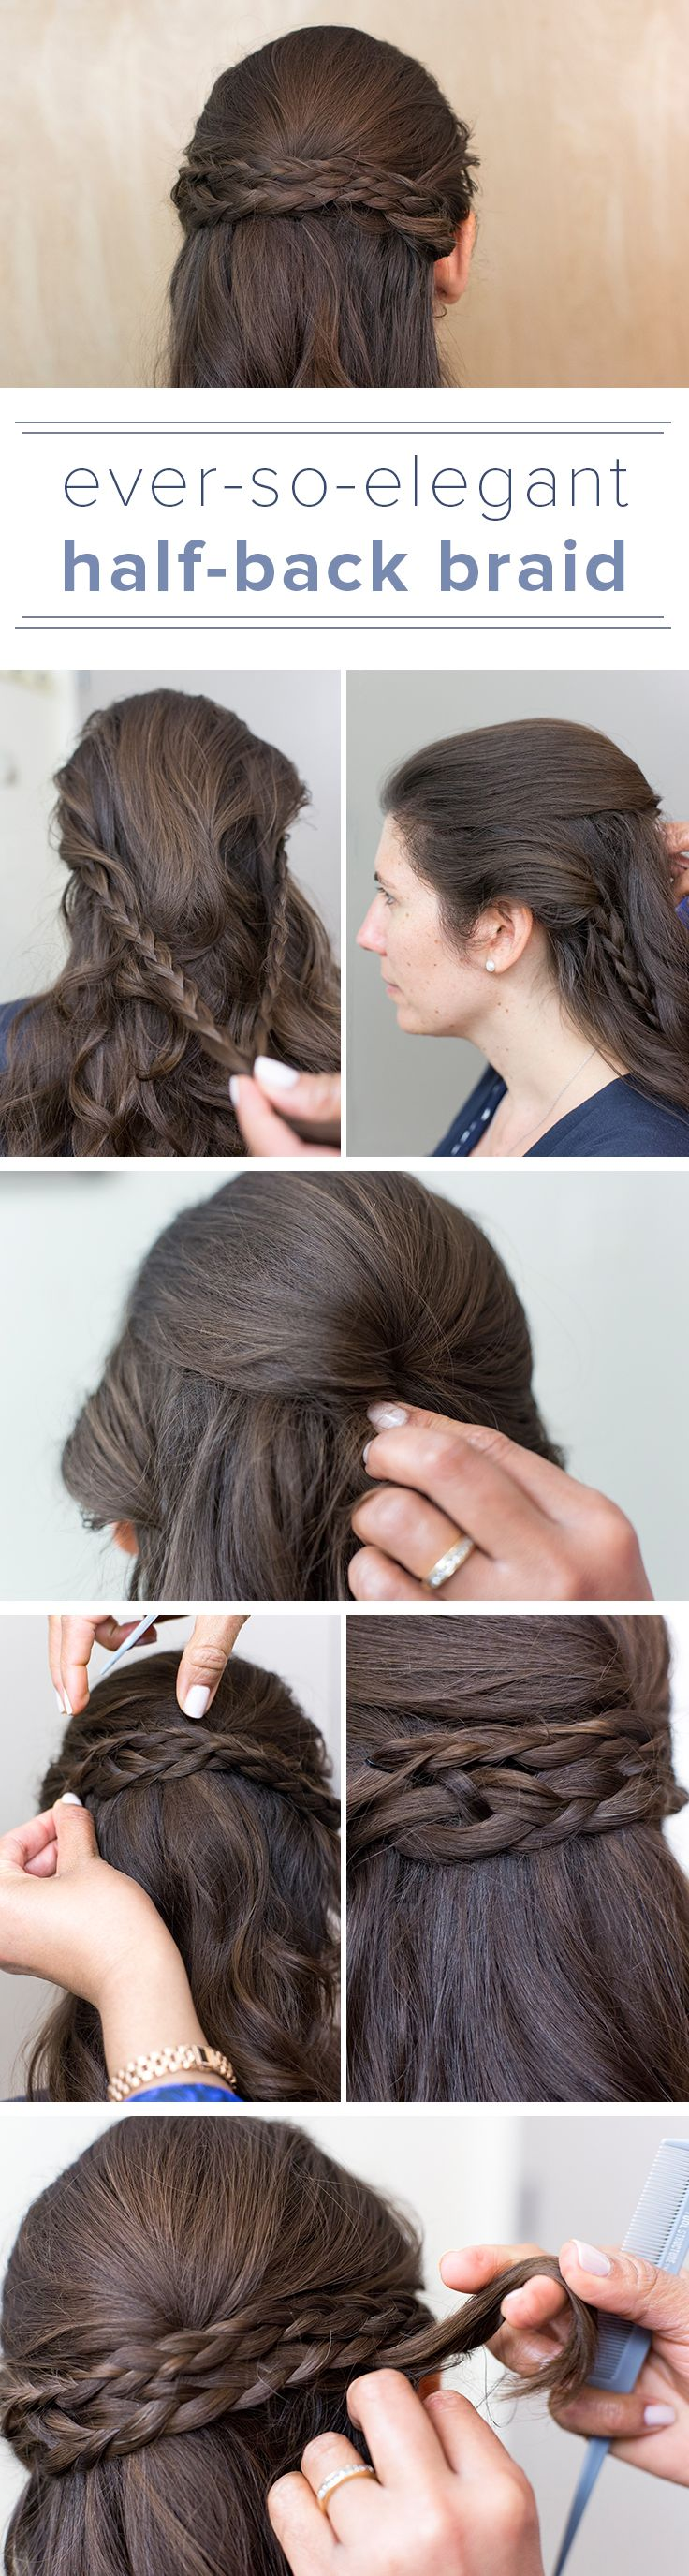 Get this half-up braided style with this easy tutorial. Have straight hair? Add some texture with tousled waves to give your a hair a beachy summertime feel.